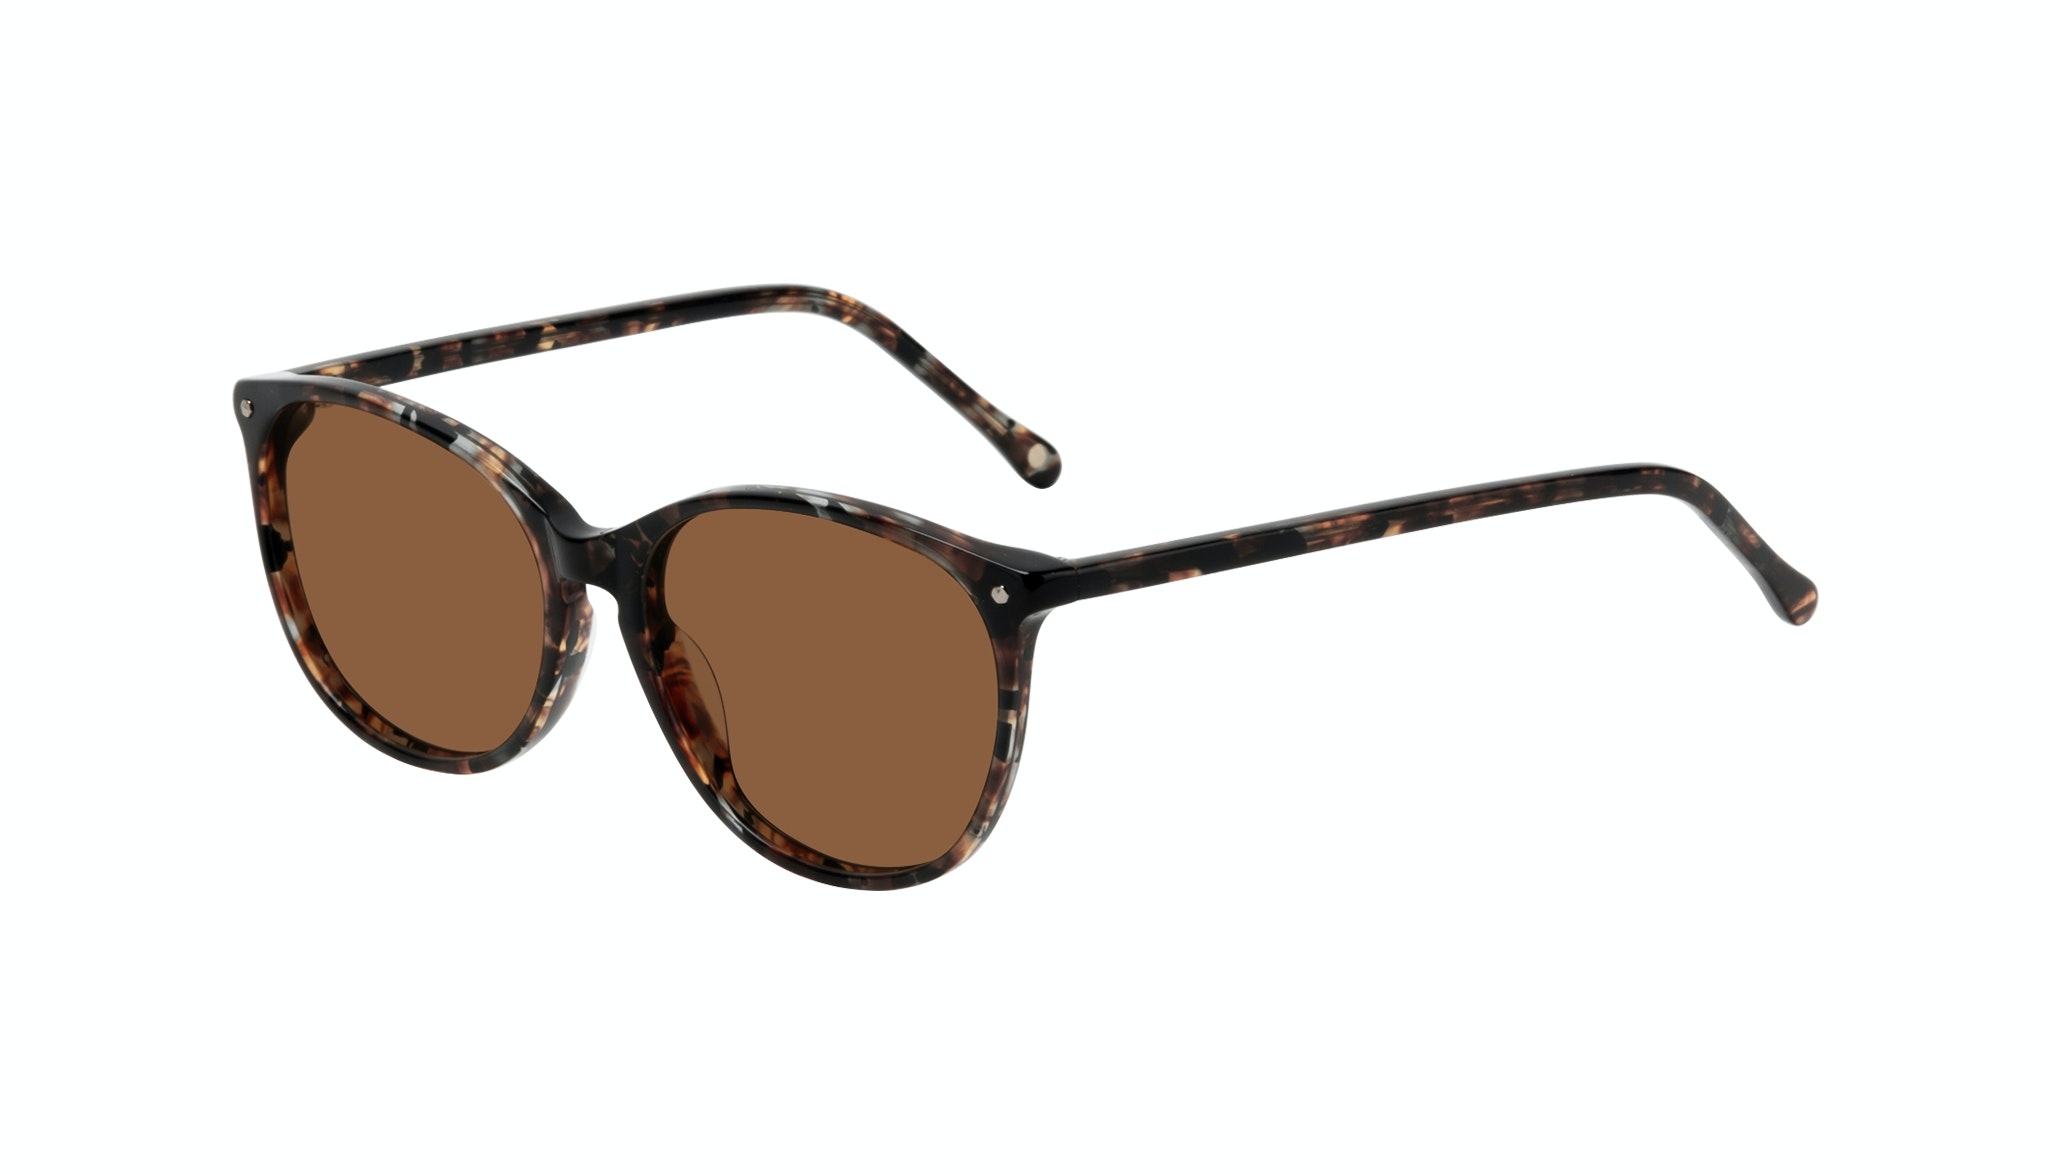 Affordable Fashion Glasses Rectangle Square Round Sunglasses Women Nadine Sepia Tilt